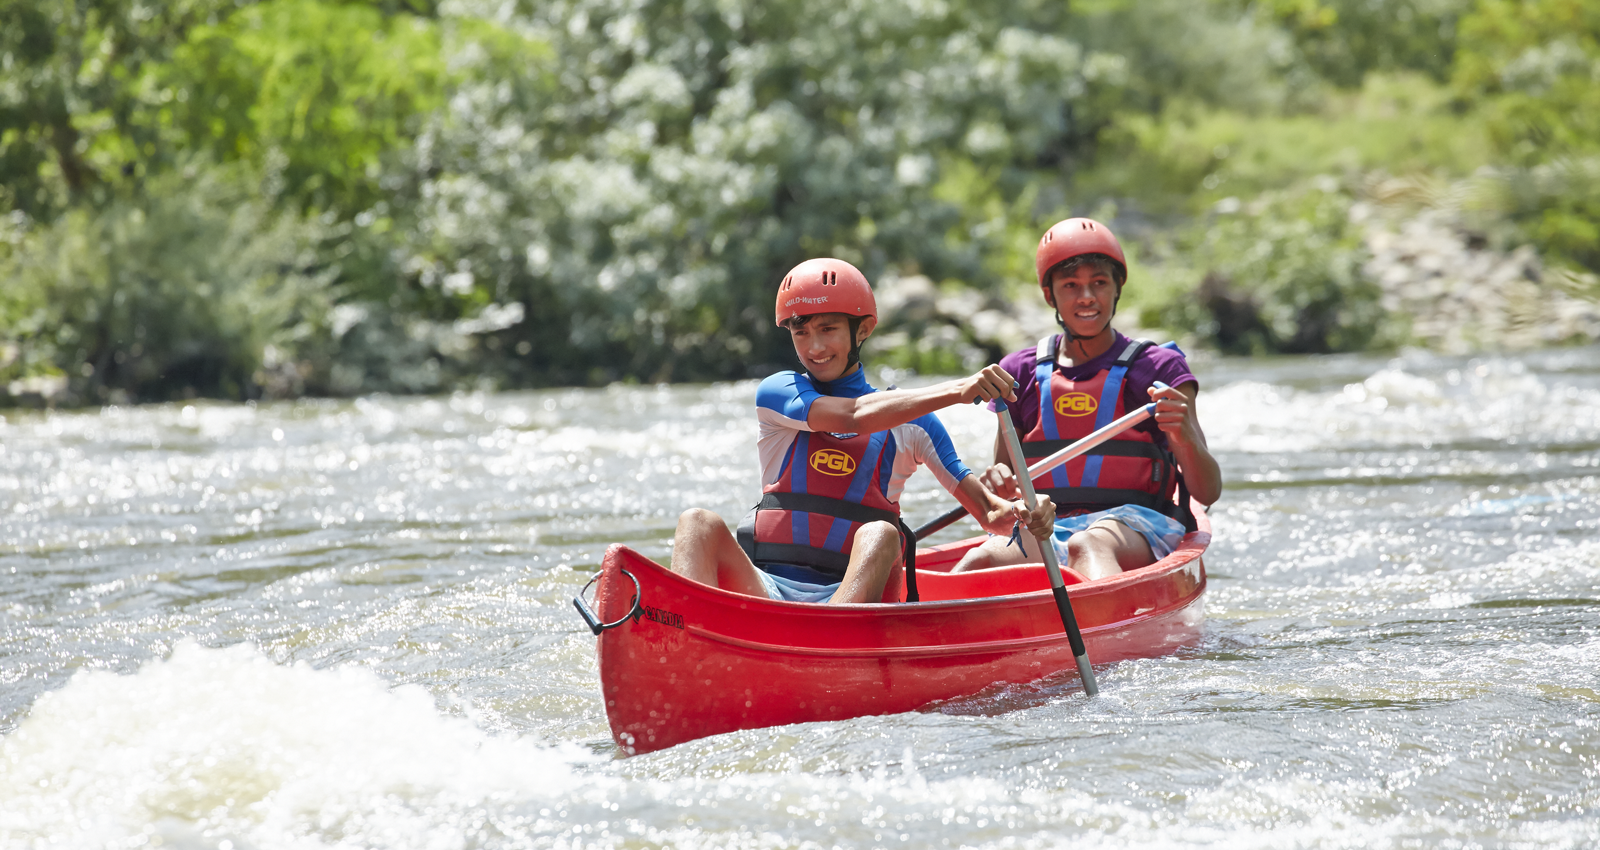 PGL Adventure Holidays - Specialist Holidays and Summer Camps for 7-17 year olds - France and Austria - Overseas Adventure - Two Centre Adventure, Paris & Disneyland®, Mediterranean Watersports, Skiing and Snowboarding